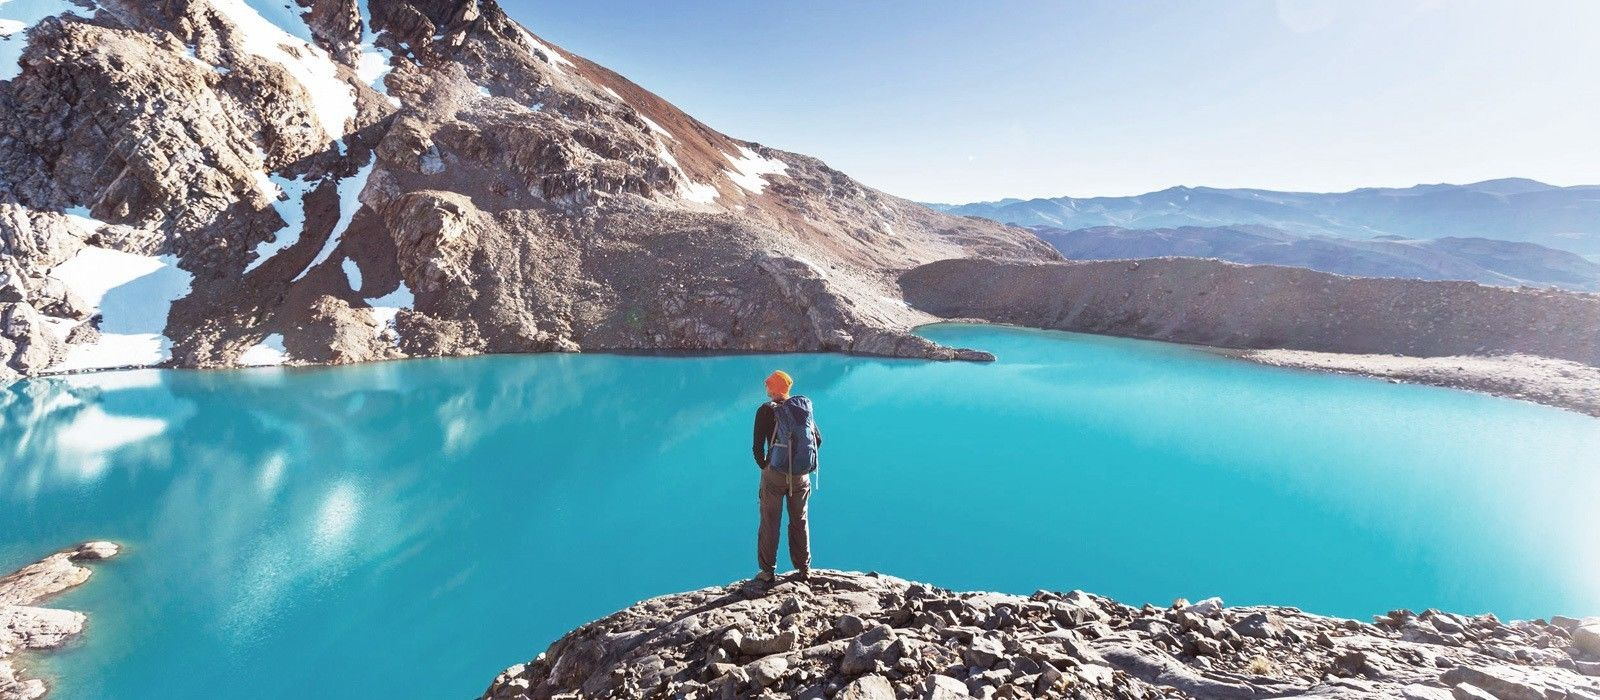 Argentina & Chile: Hiking in Patagonia Tour Trip 3